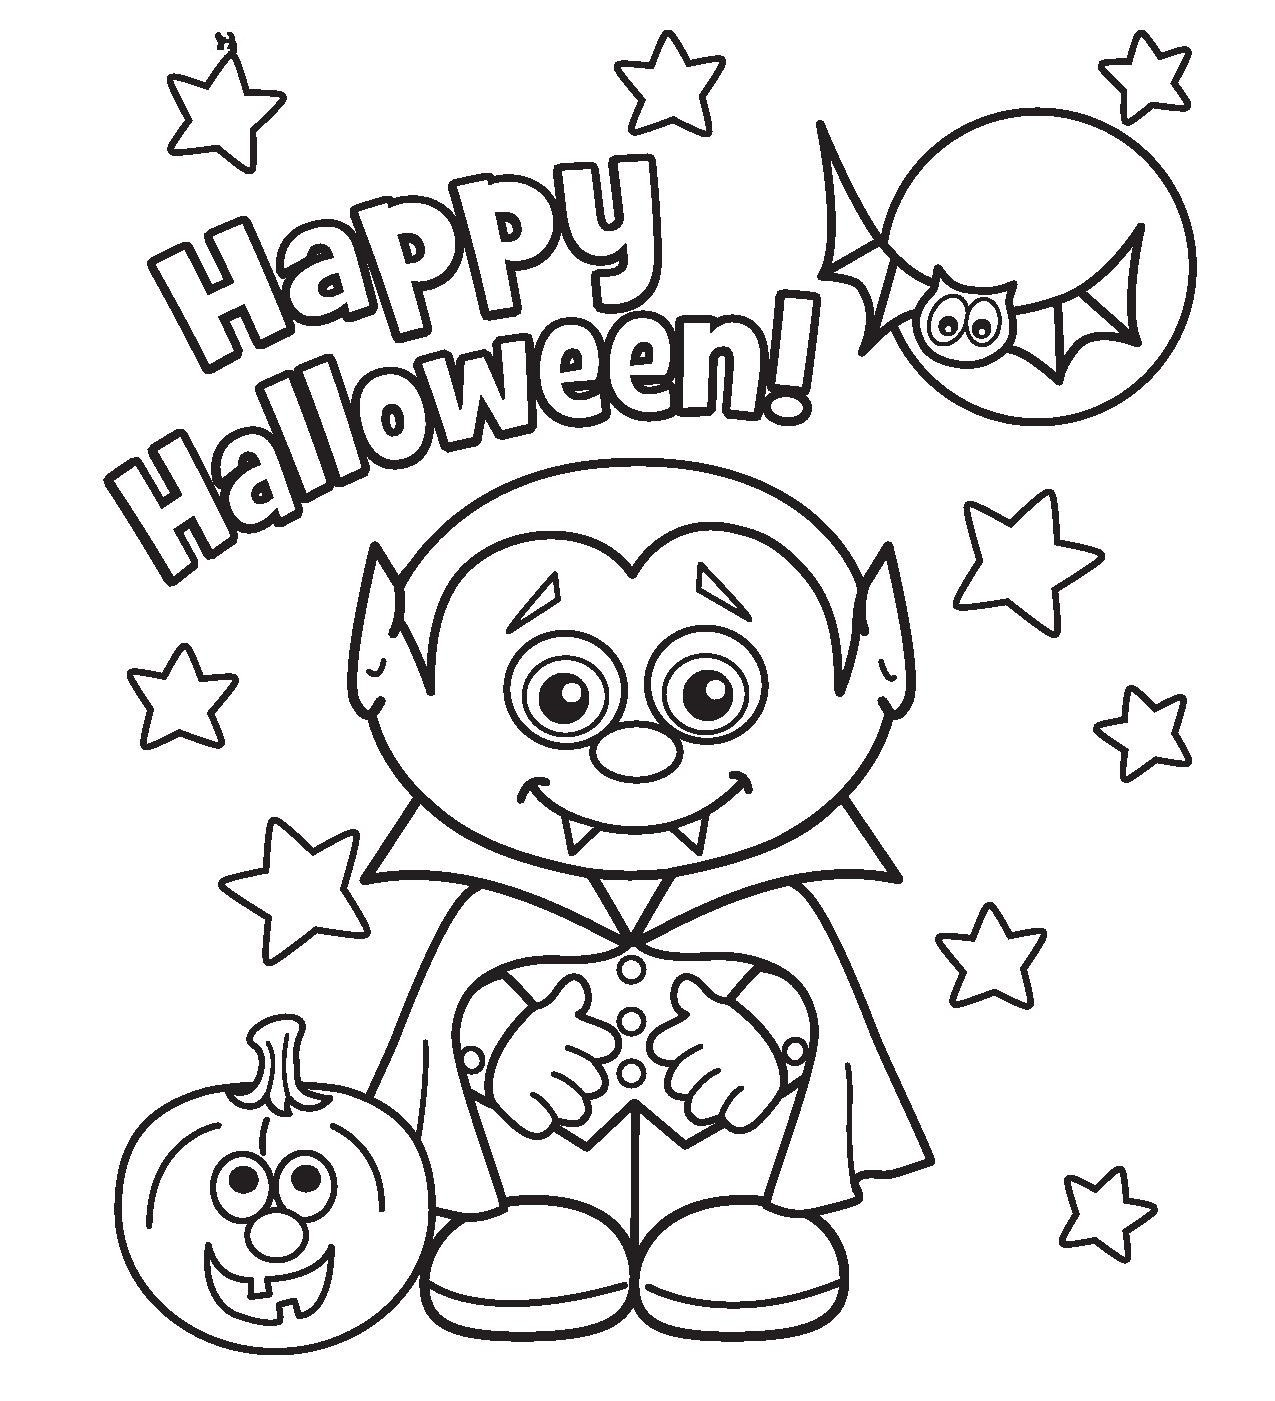 free coloring pages halloween - photo#5